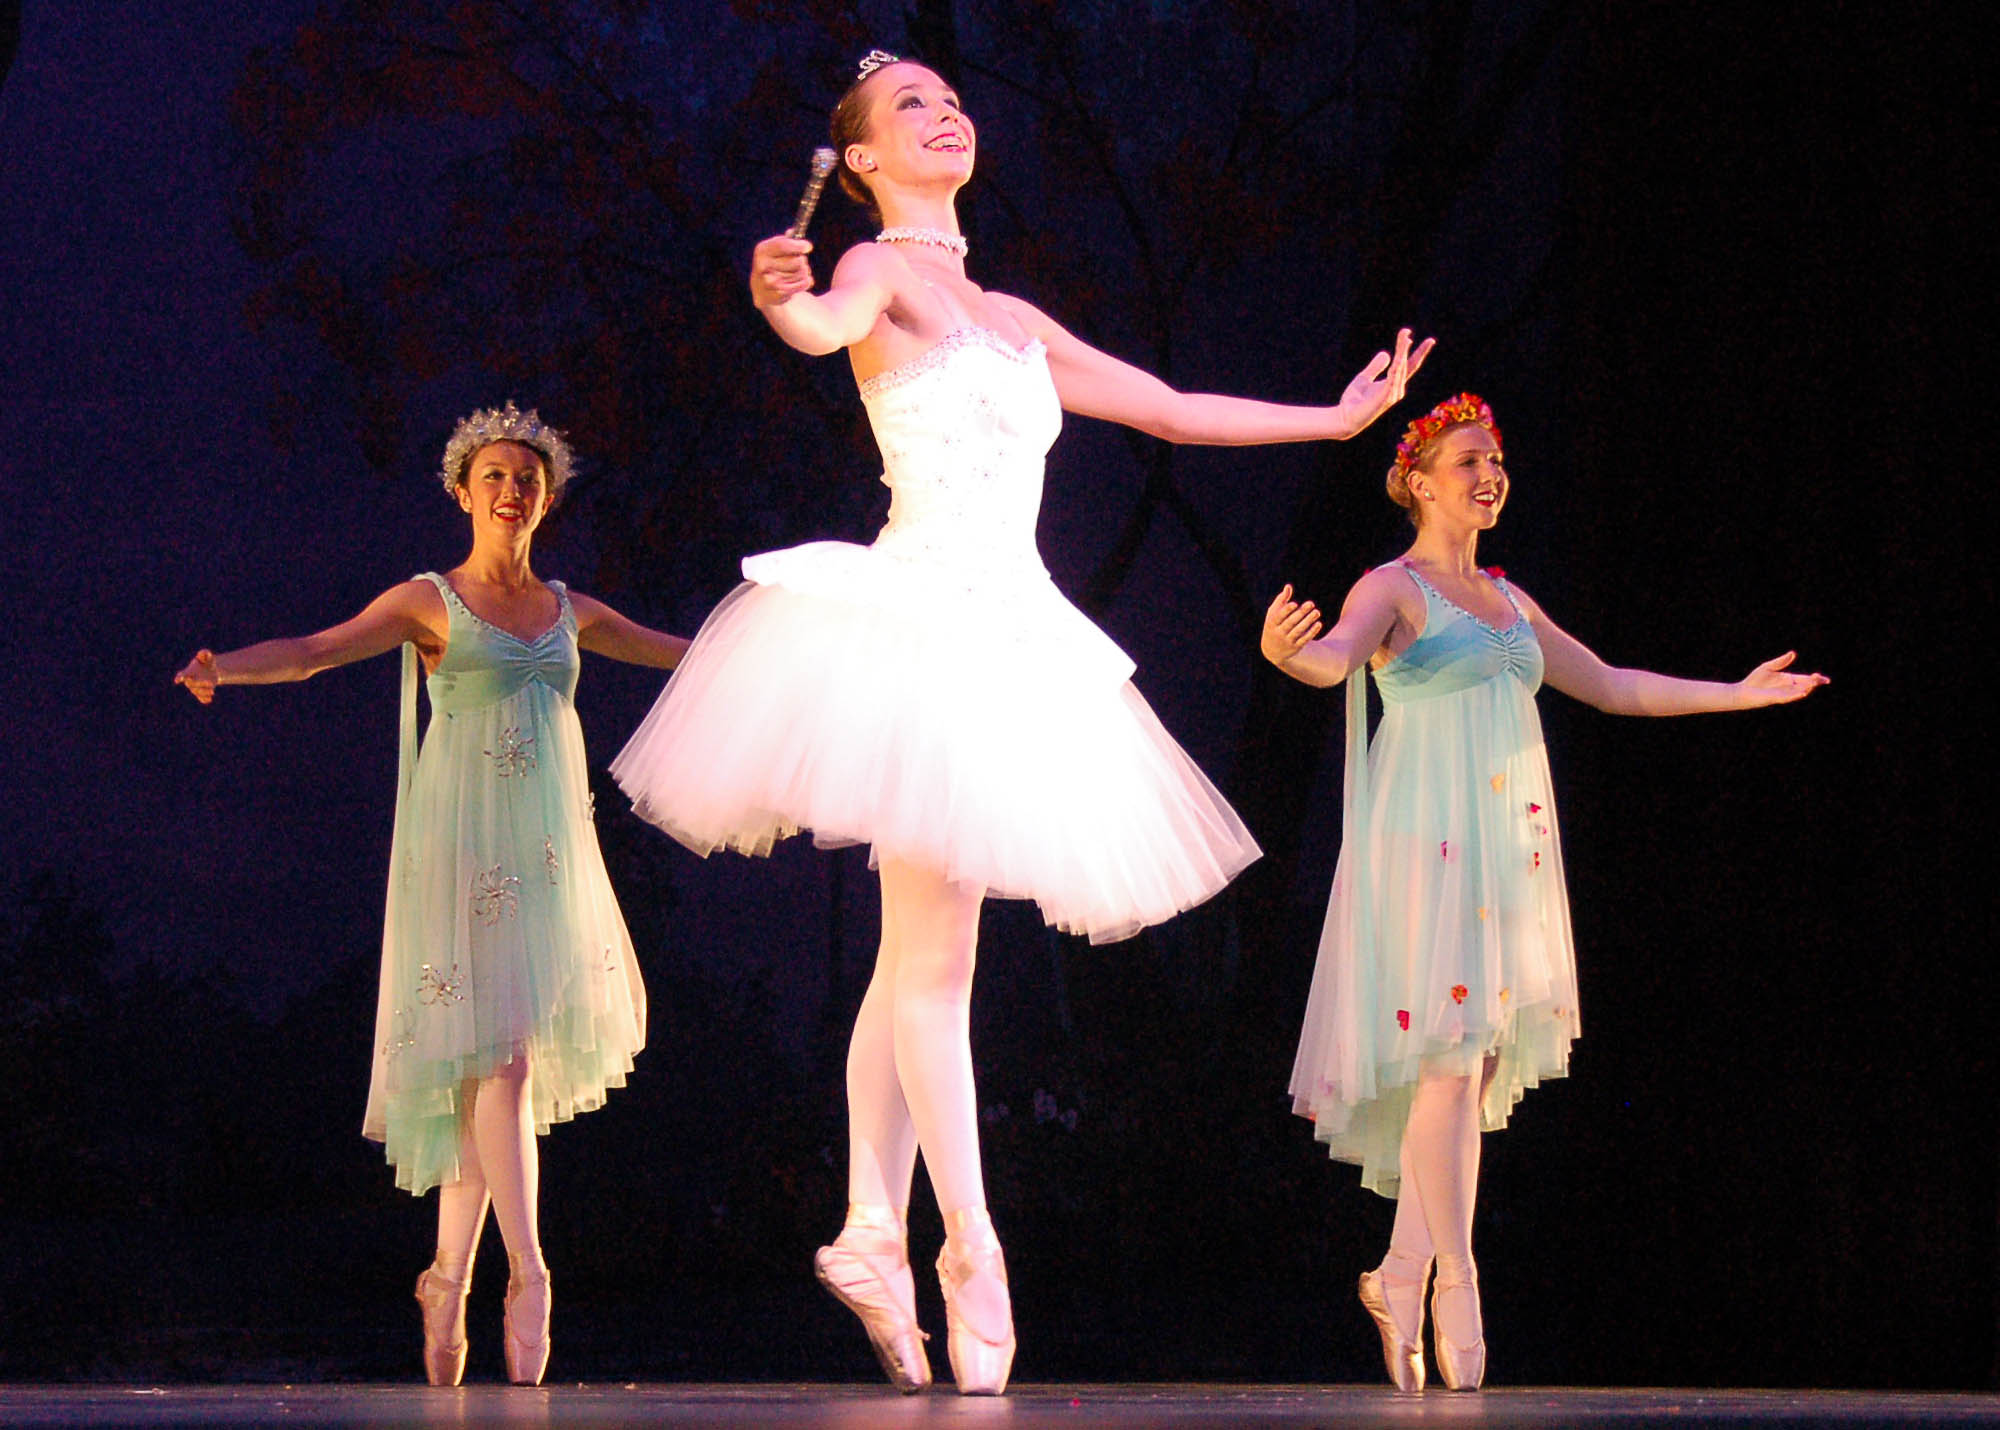 The ballet Cinderella by Prokofiev